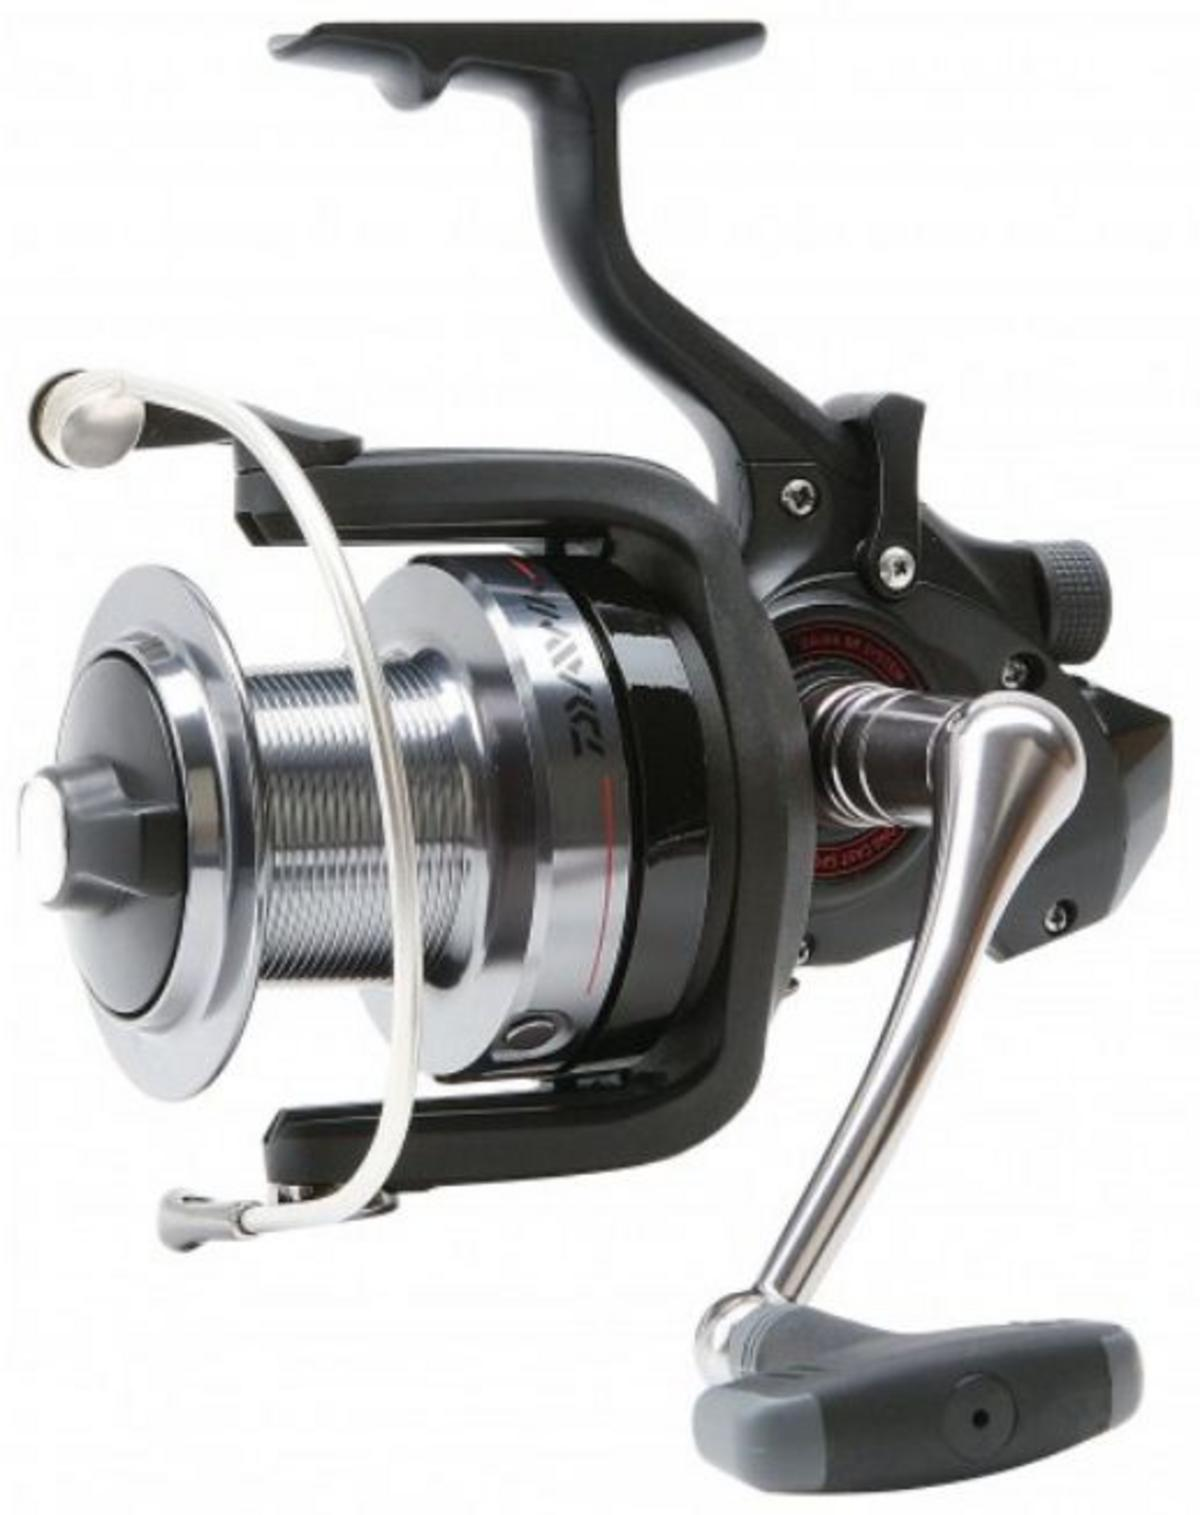 New Daiwa Windcast BR LD 5500 Carp Fishing Reel Model No. WCBR5500LDA